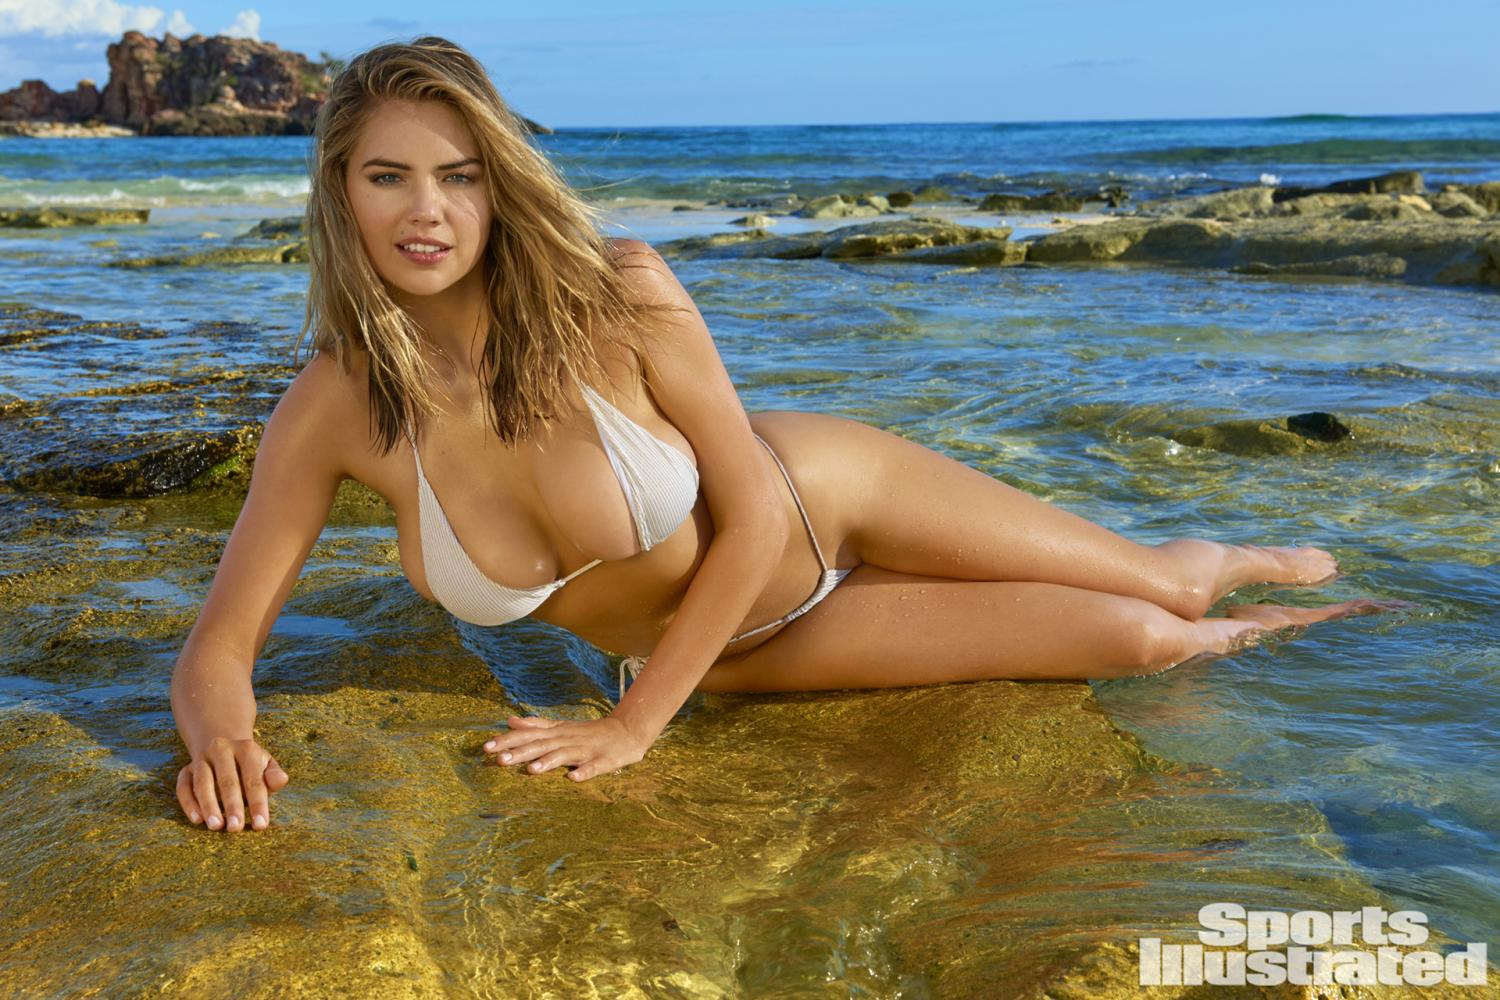 kate upton si swimsuit 2017 bikini string thong sexy hot nude naked